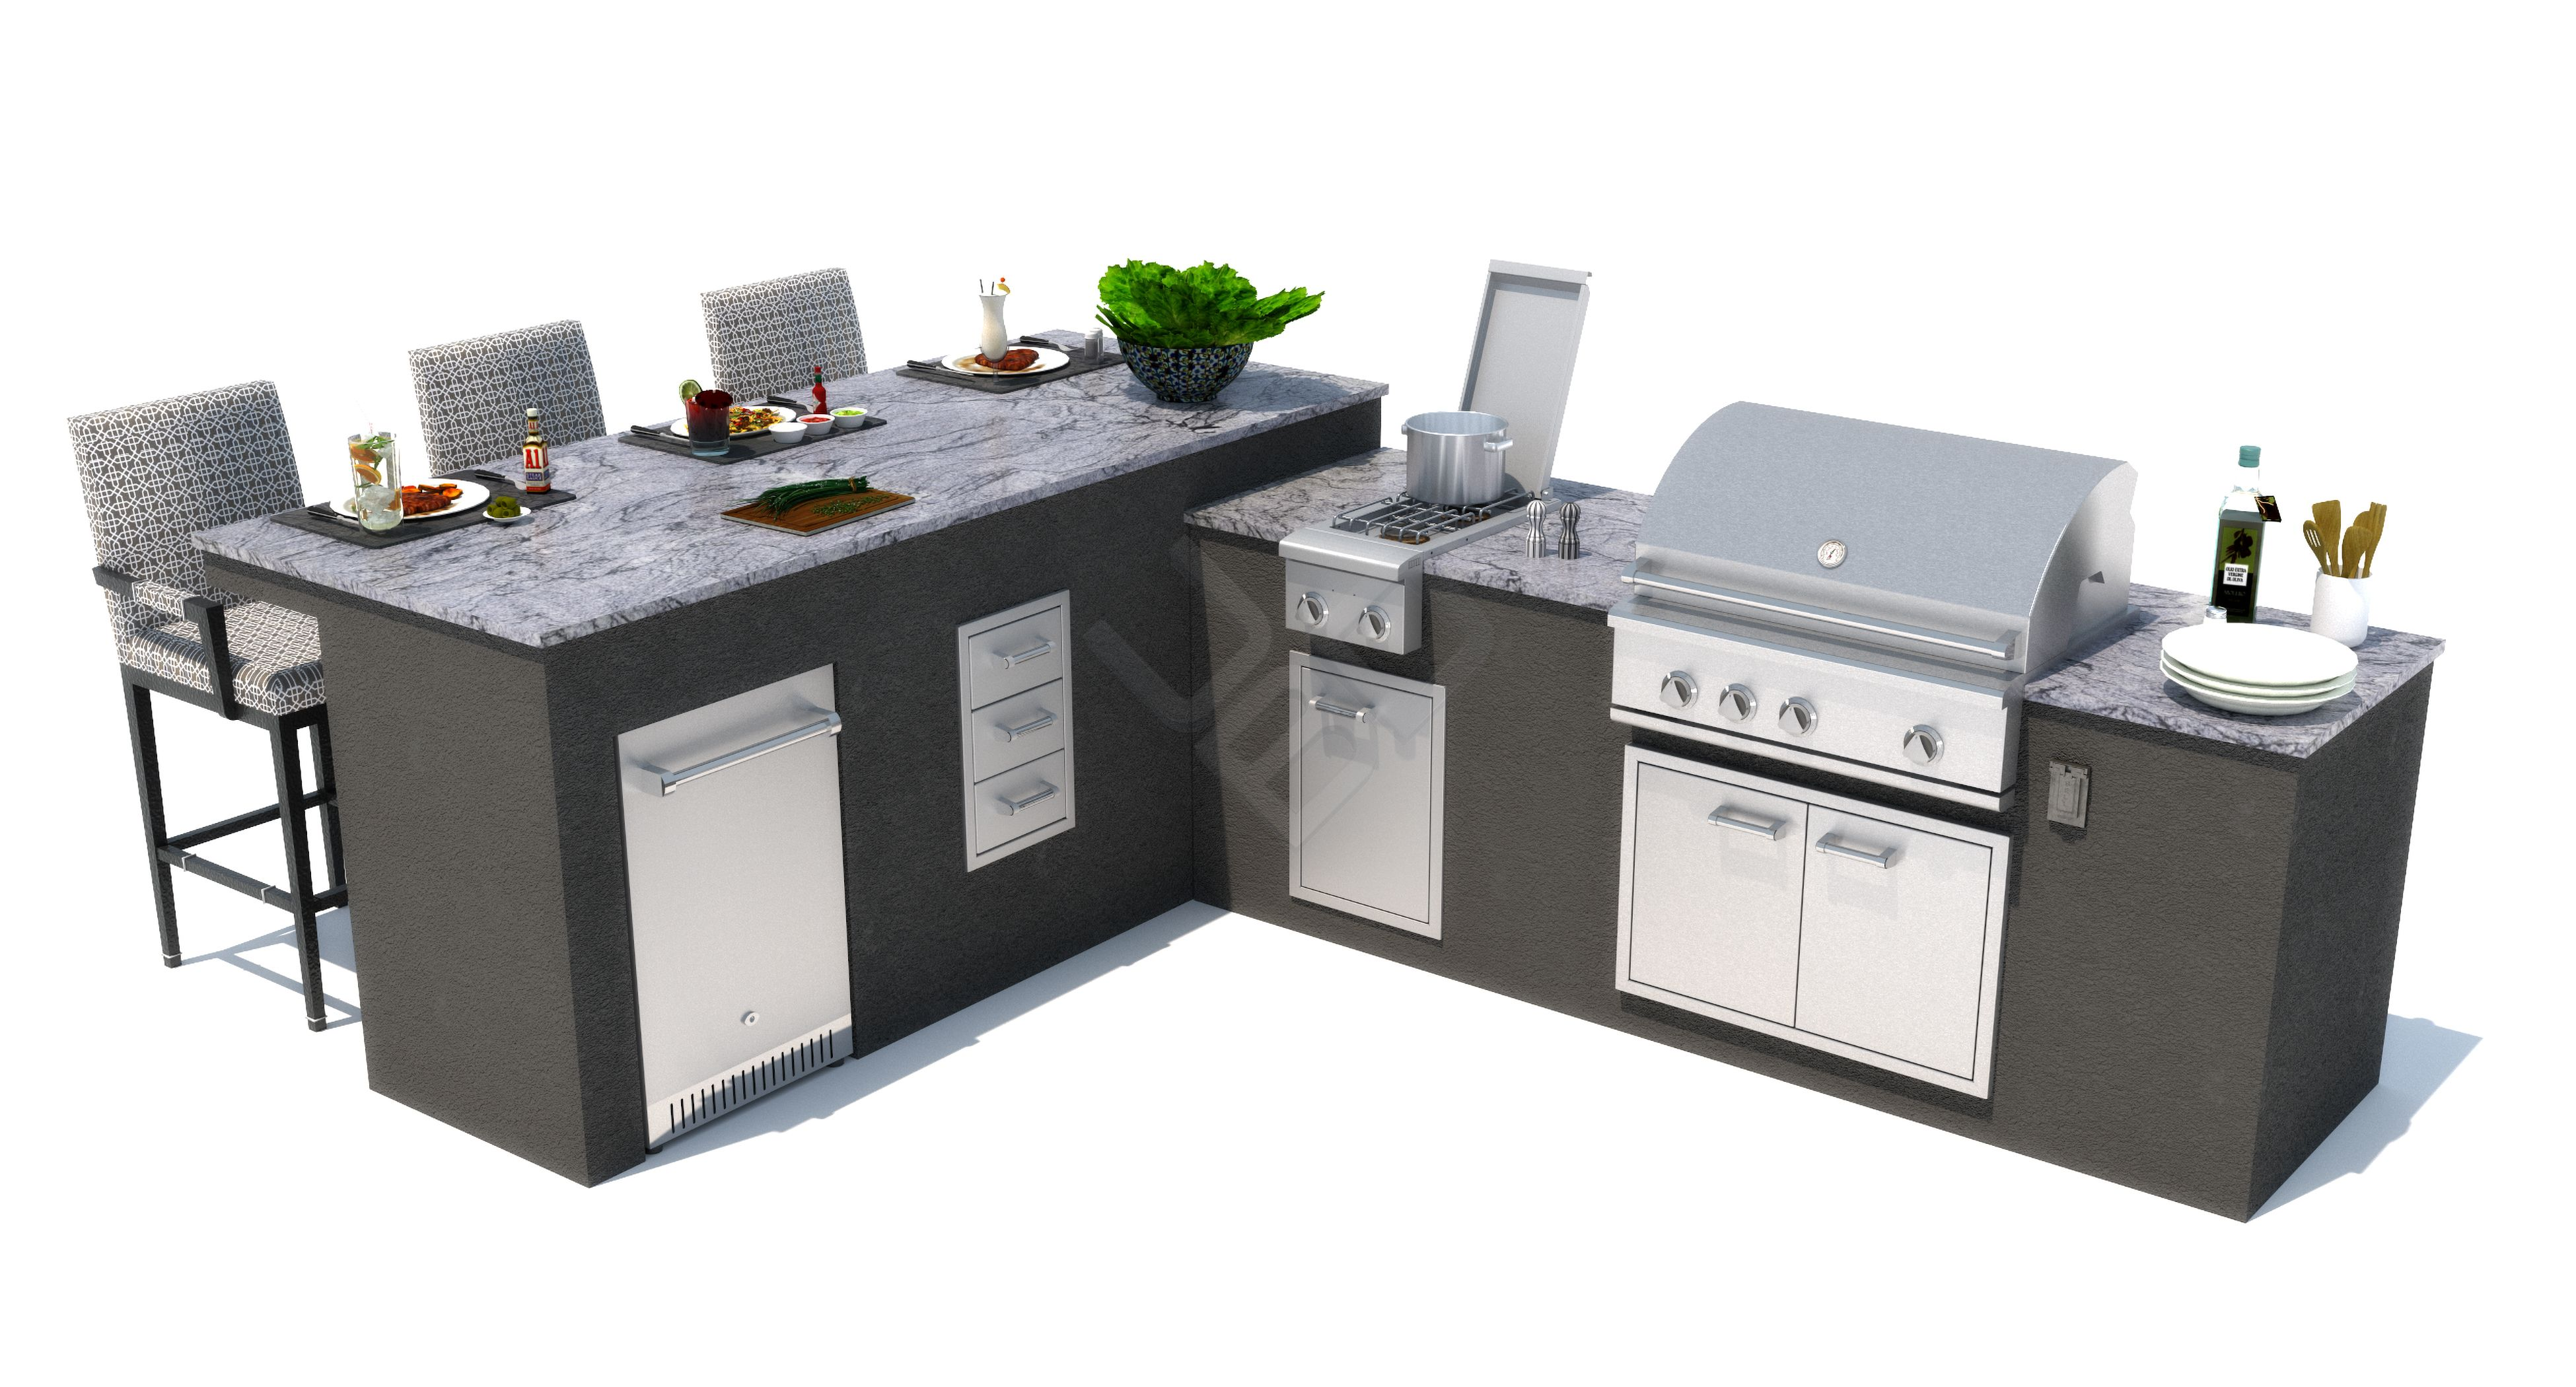 This Modular Outdoor Kitchen Comes In Multiple Configurations Finds The One Perfect For You At Outdoor Kitchen Modular Outdoor Kitchens Outdoor Furniture Sets